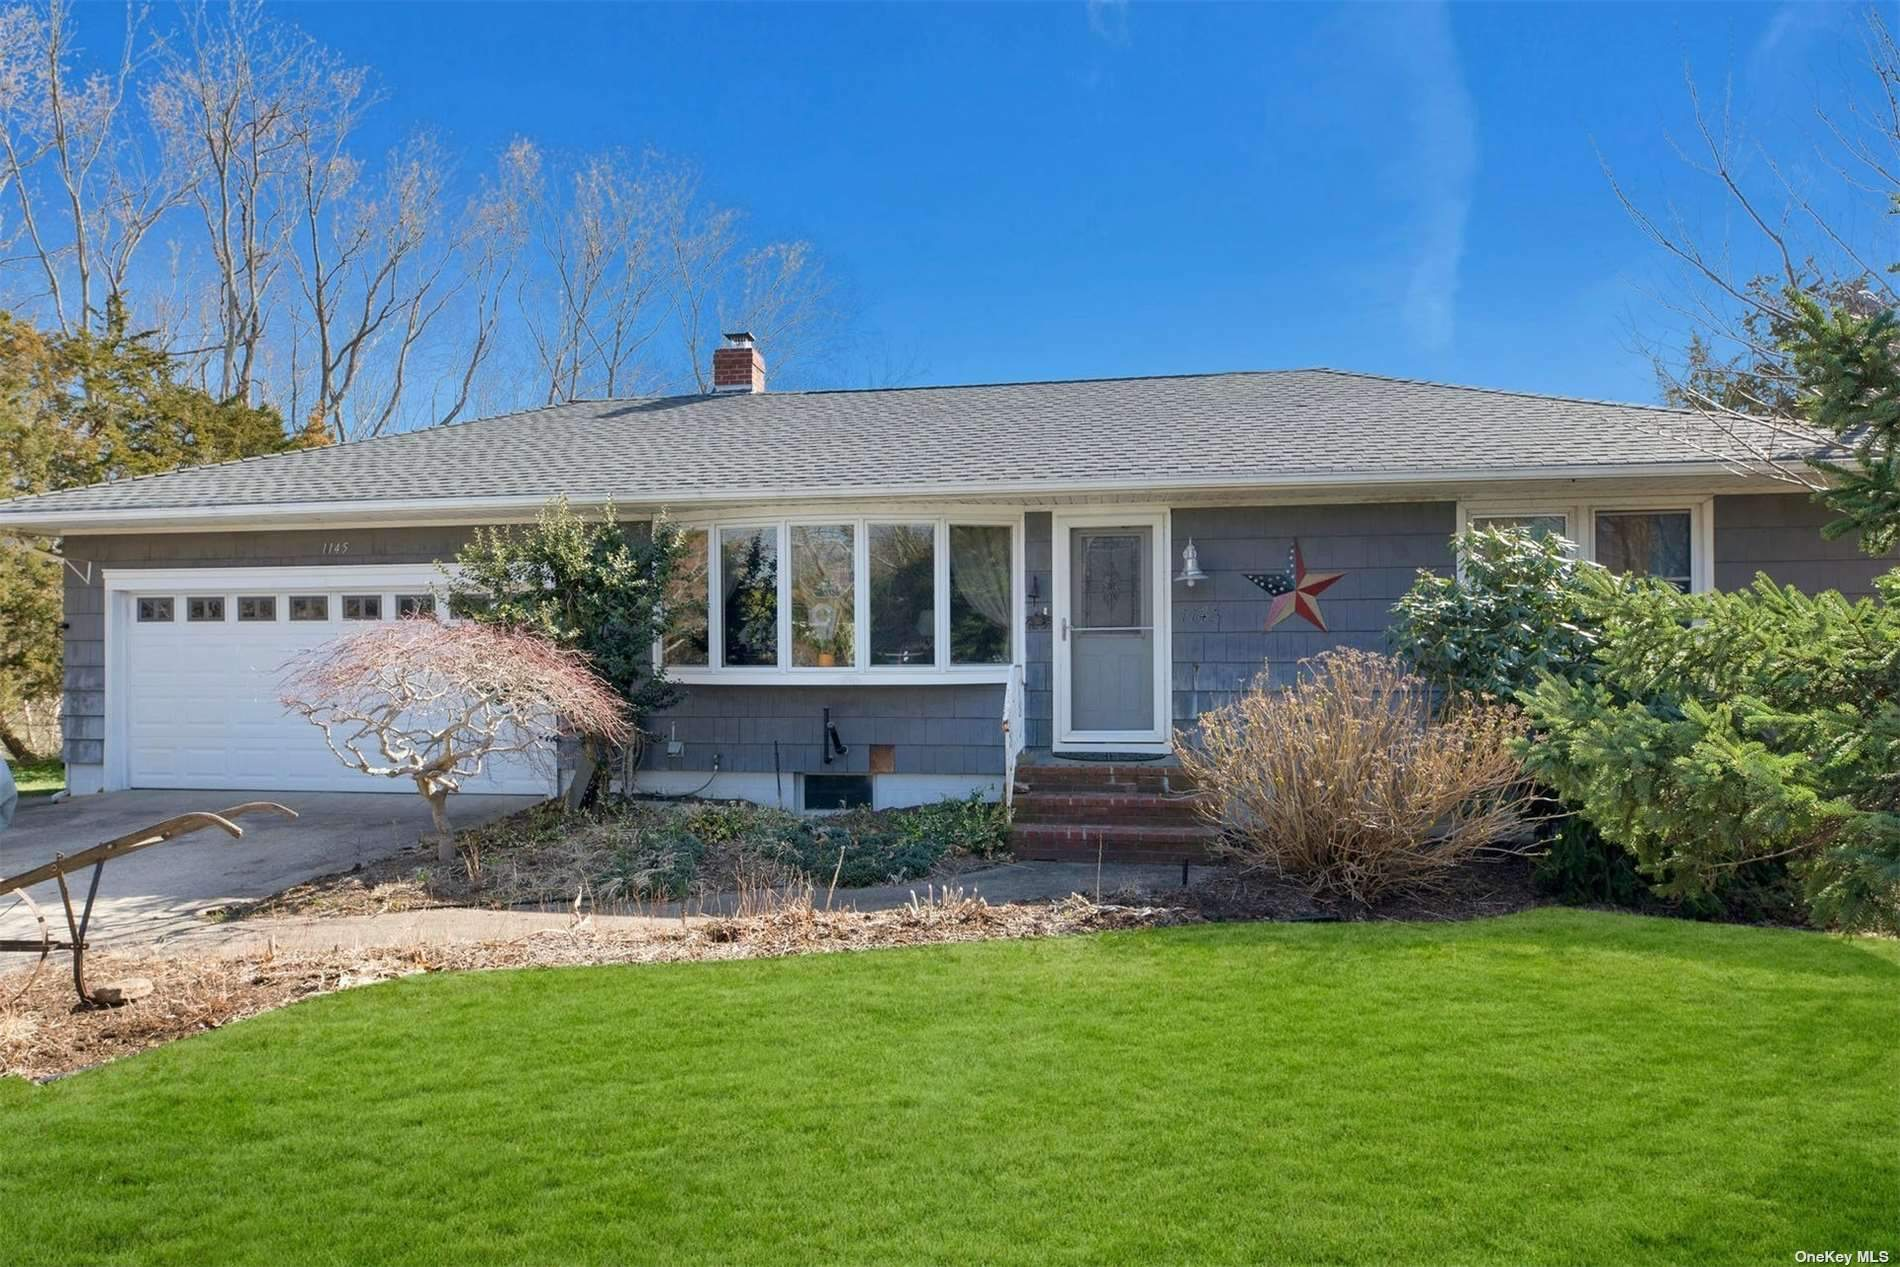 Comfortable Ranch Home with Useable Walkout Basement in Desirable Laughing Waters Association with Community Bay Beach, Boat Ramp, Kayak Stations and Docking.  Close to Two Bay Beaches as Well as Special Privileges at Southold Parks District Beaches.  Room for Pool with Proper Permits.